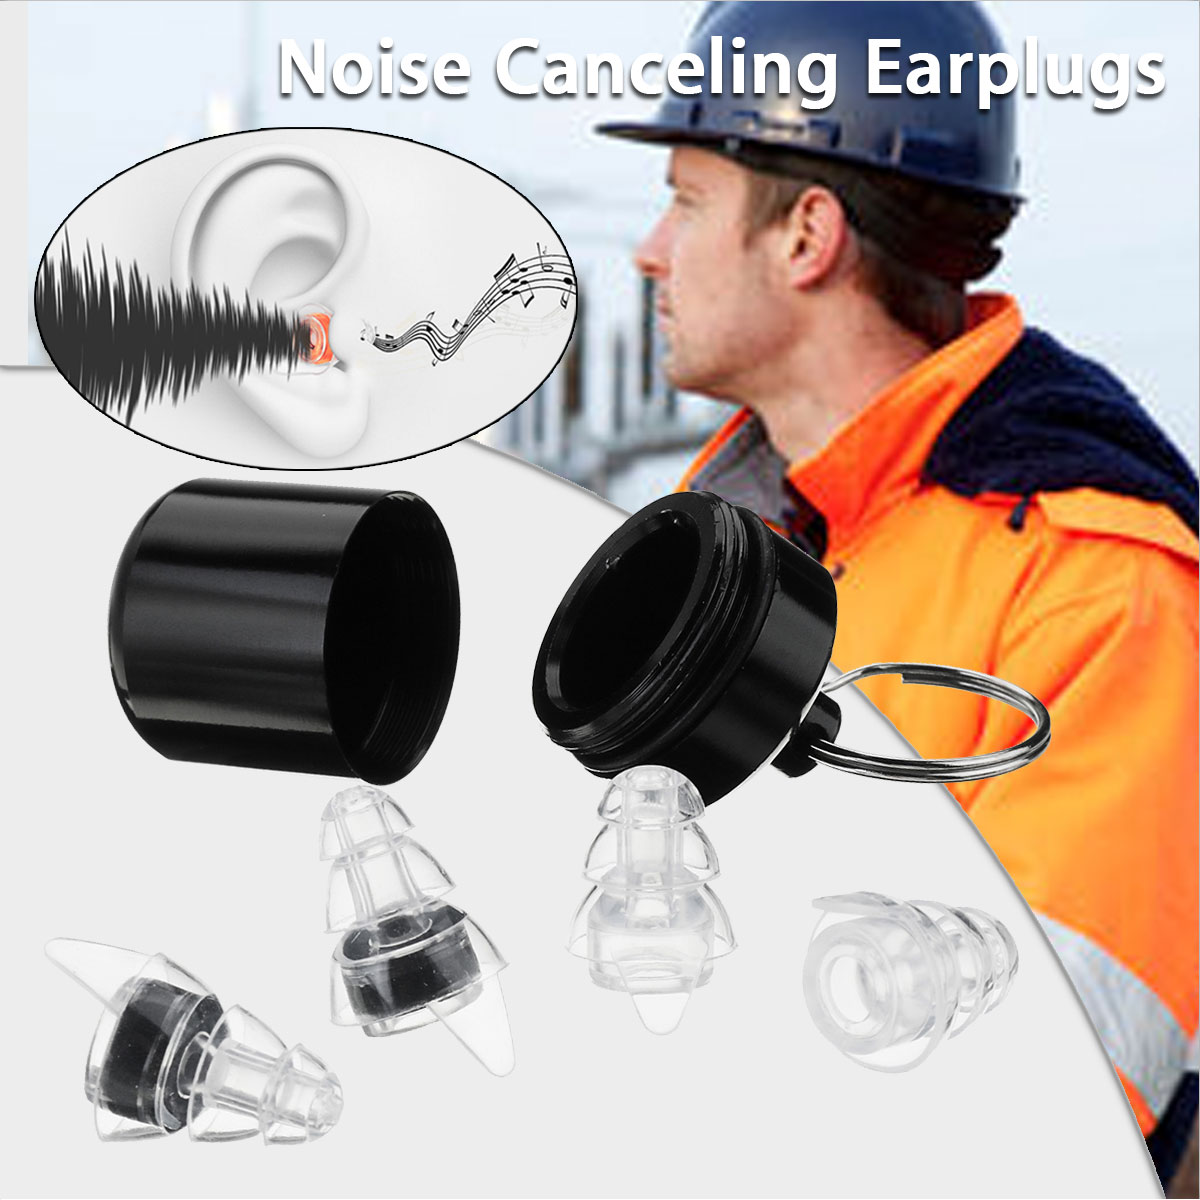 где купить Safurance 2Pairs Noise Cancelling Hearing Protection Earplugs For Concerts Musician Motorcycles Reusable Silicone Ear plugs дешево